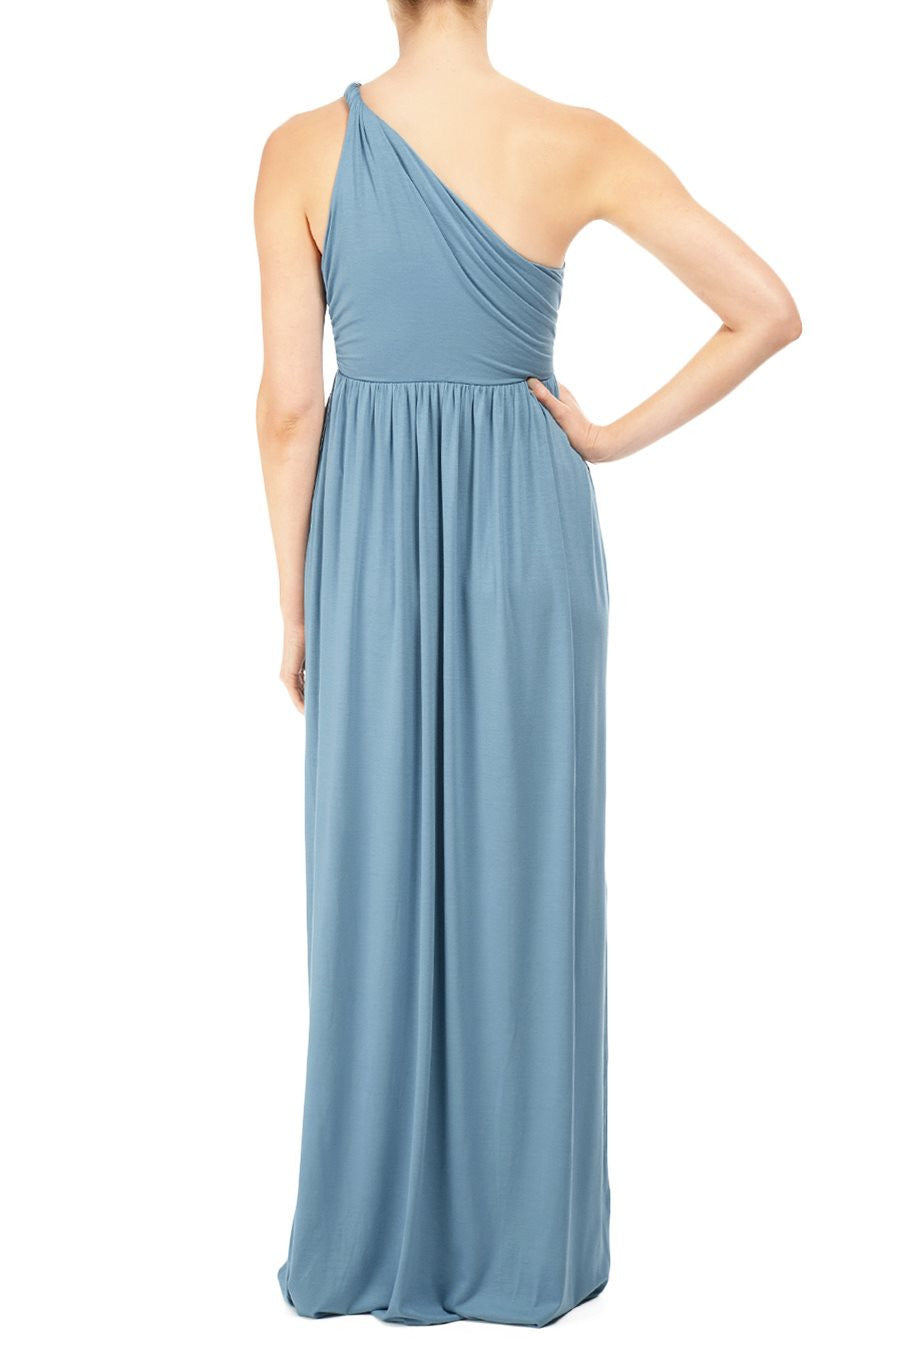 LONG TWIST SHOULDER DRESS - TOURMALINE